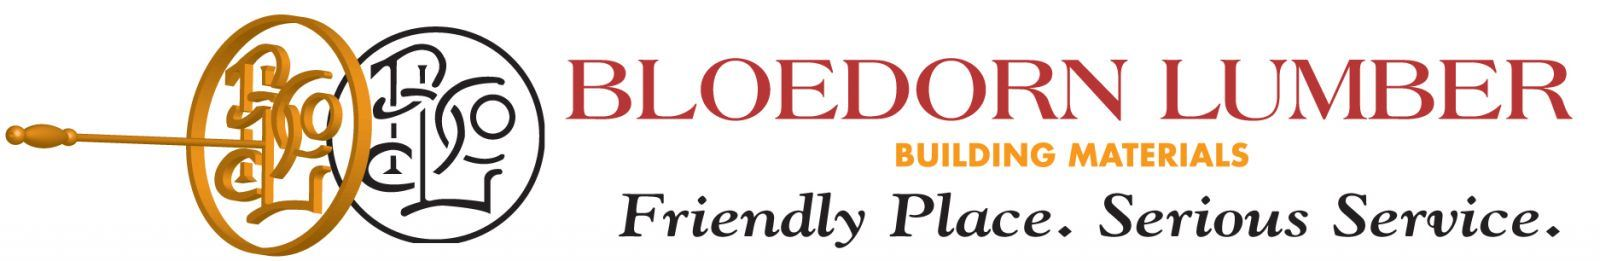 Bloedorn Lumber Building Materials - Friendly Place. Serious Service.